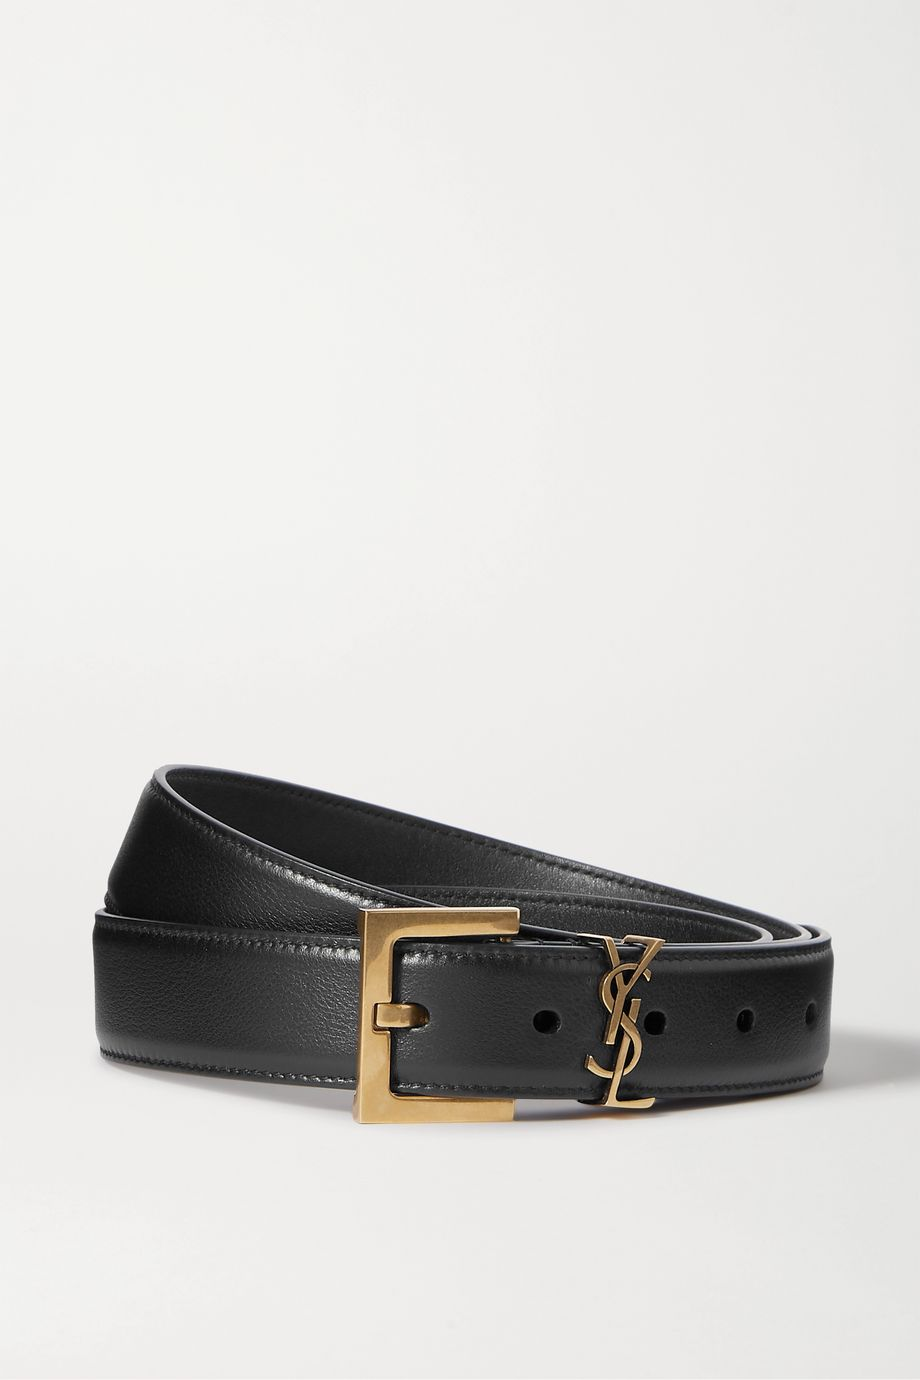 SAINT LAURENT Embellished leather belt